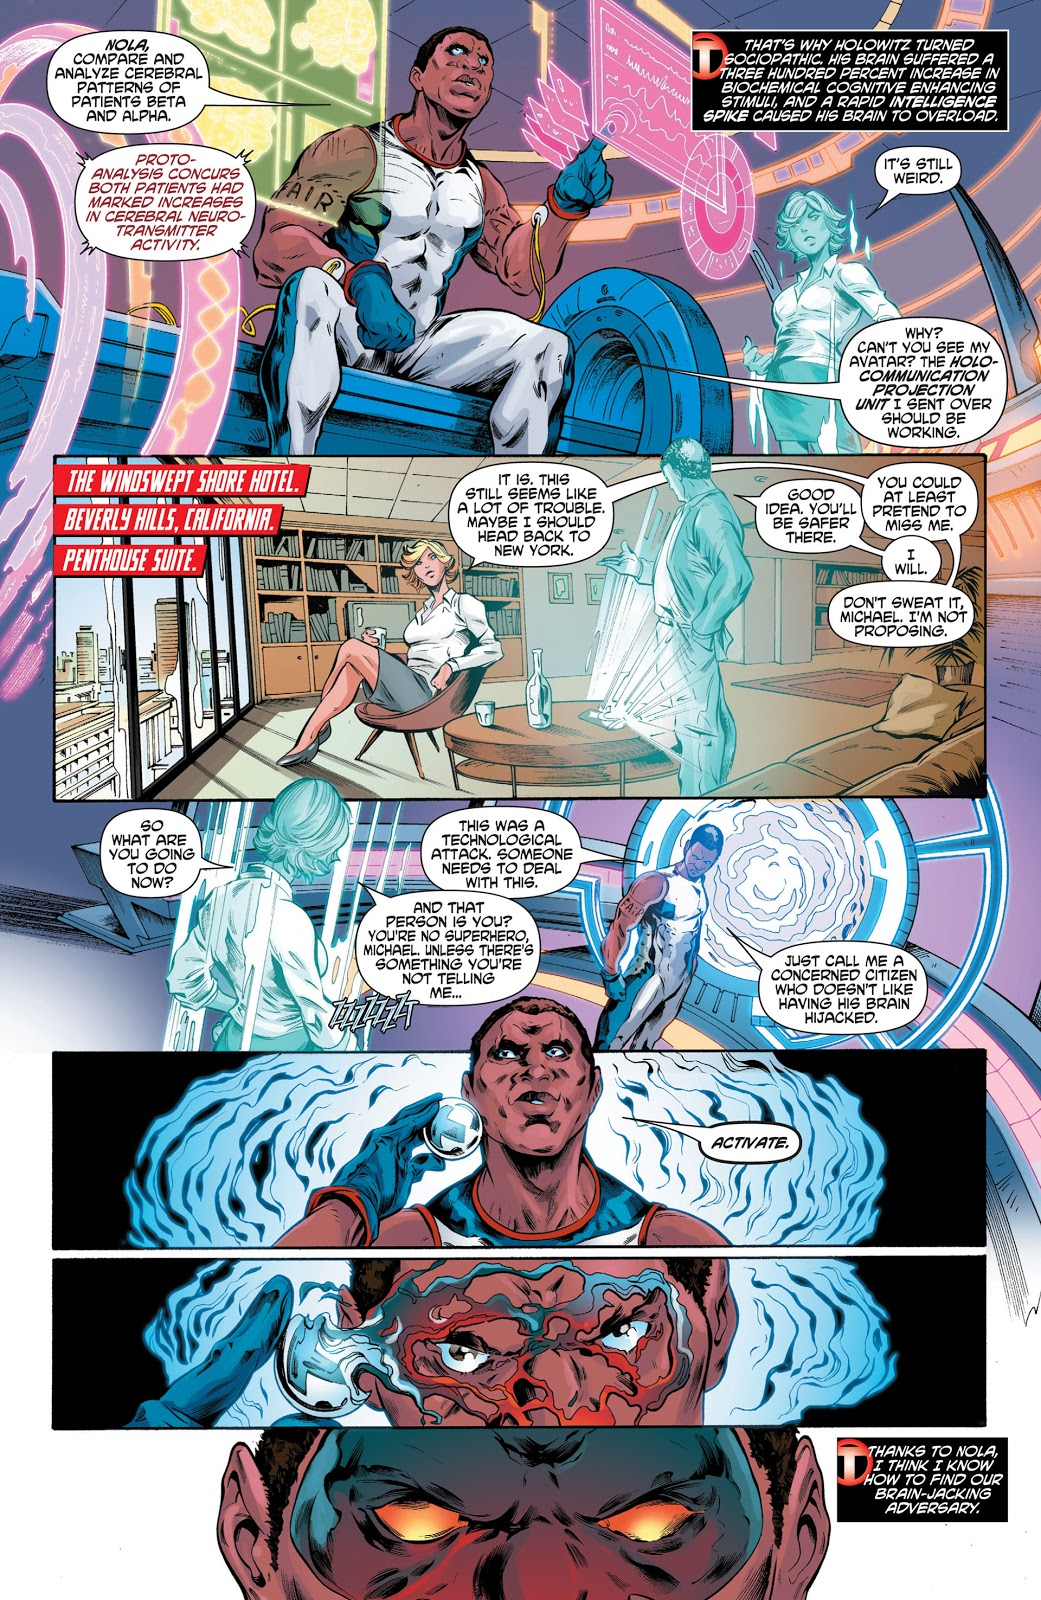 Mister Terrific Mind Games review